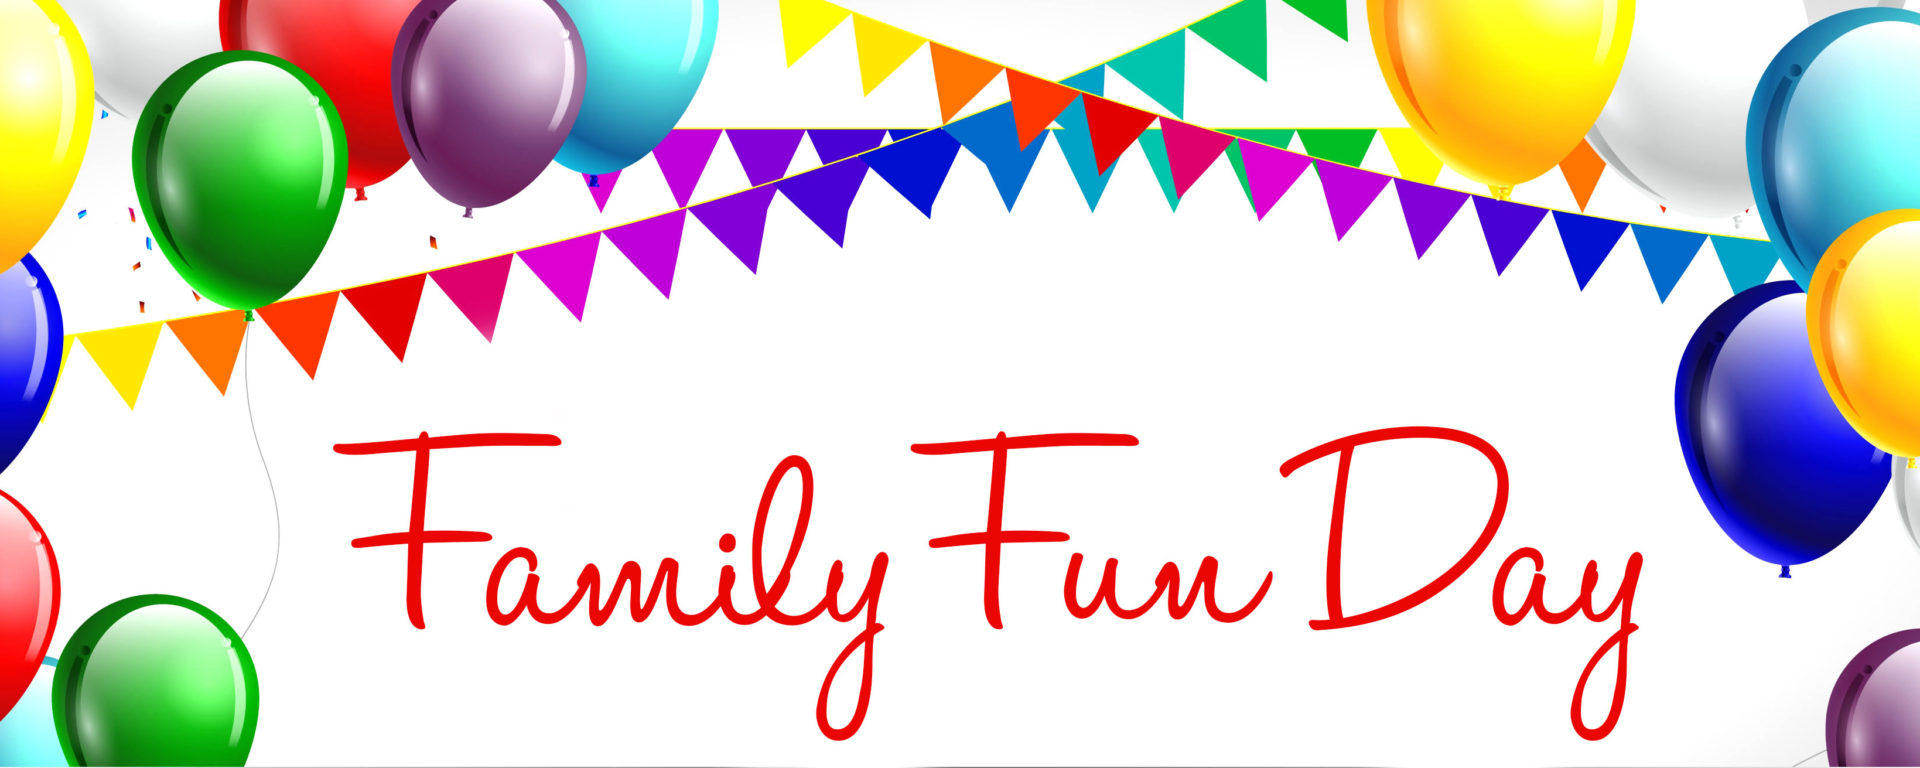 Dainfern college family fun day 13 may 2017 dainfern news - Family days enero 2017 ...